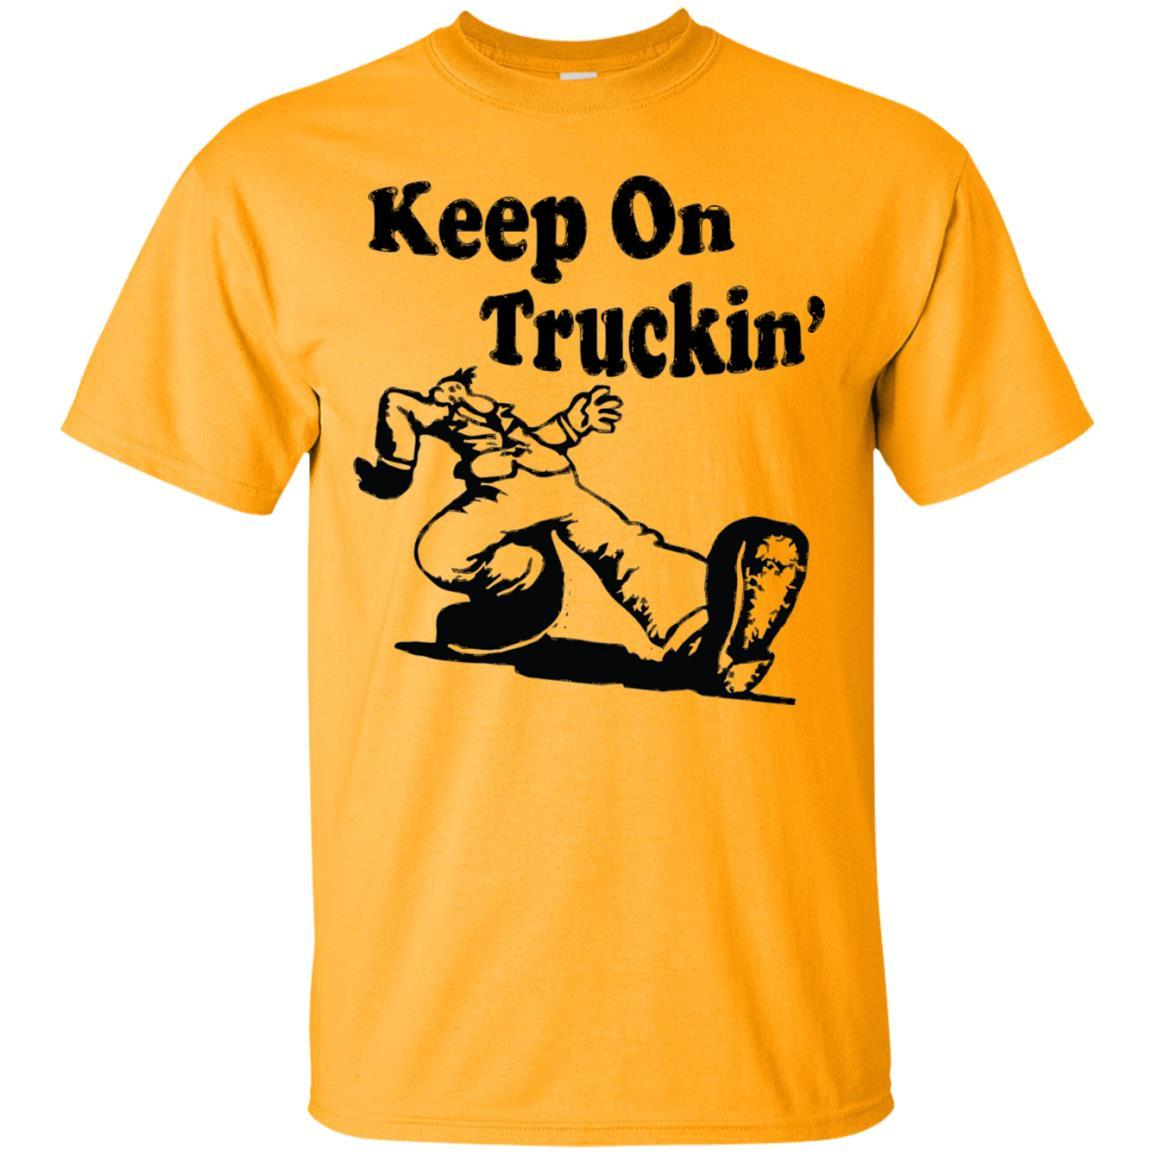 Iconic Keep On Truckin' Tshirt Gold / 5XL